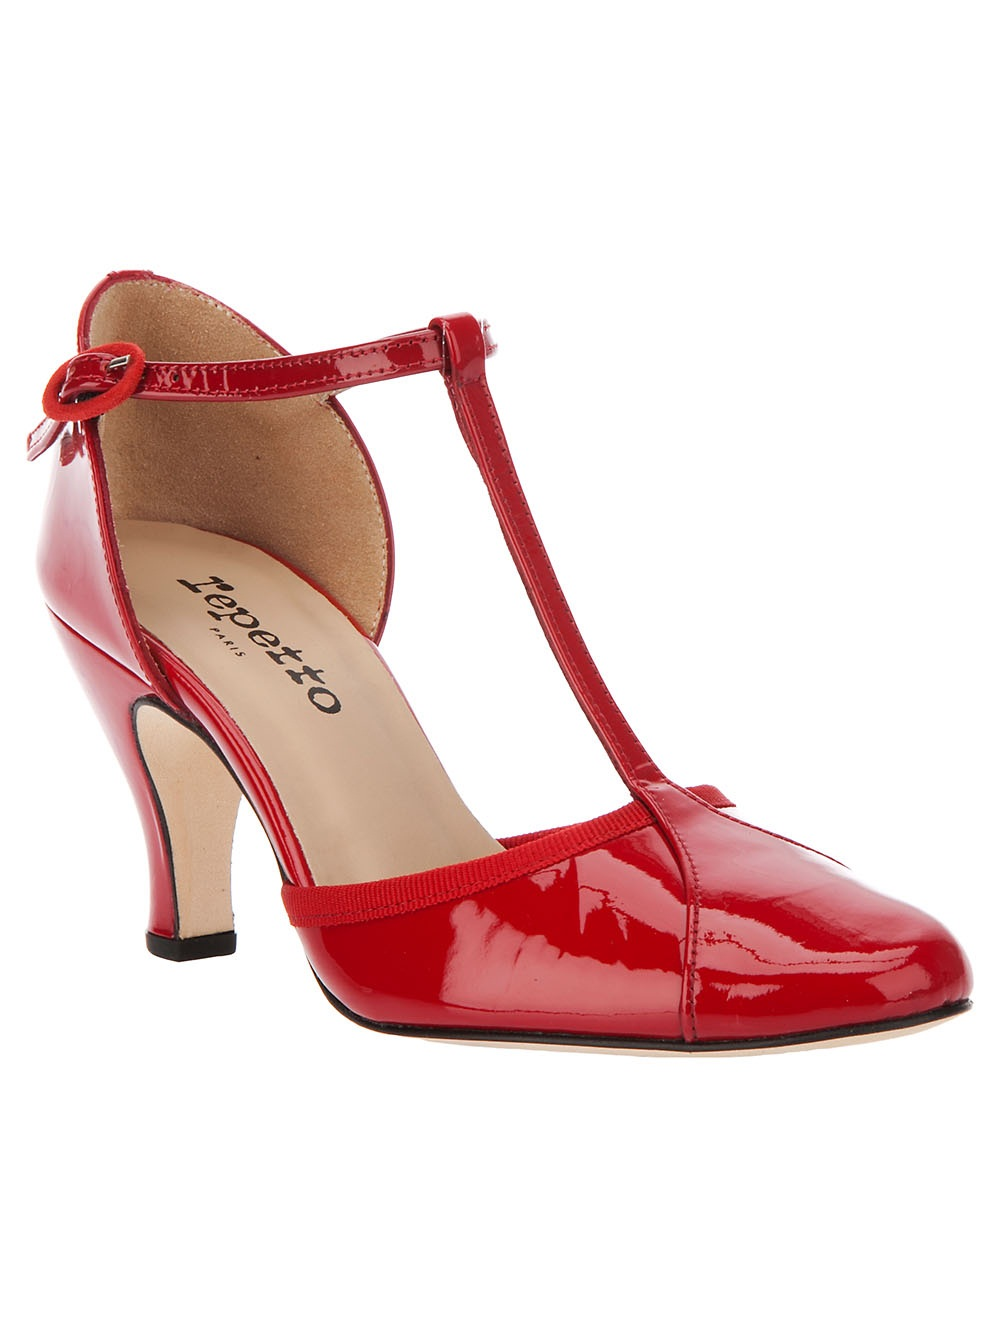 Repetto Shoes Uk Online